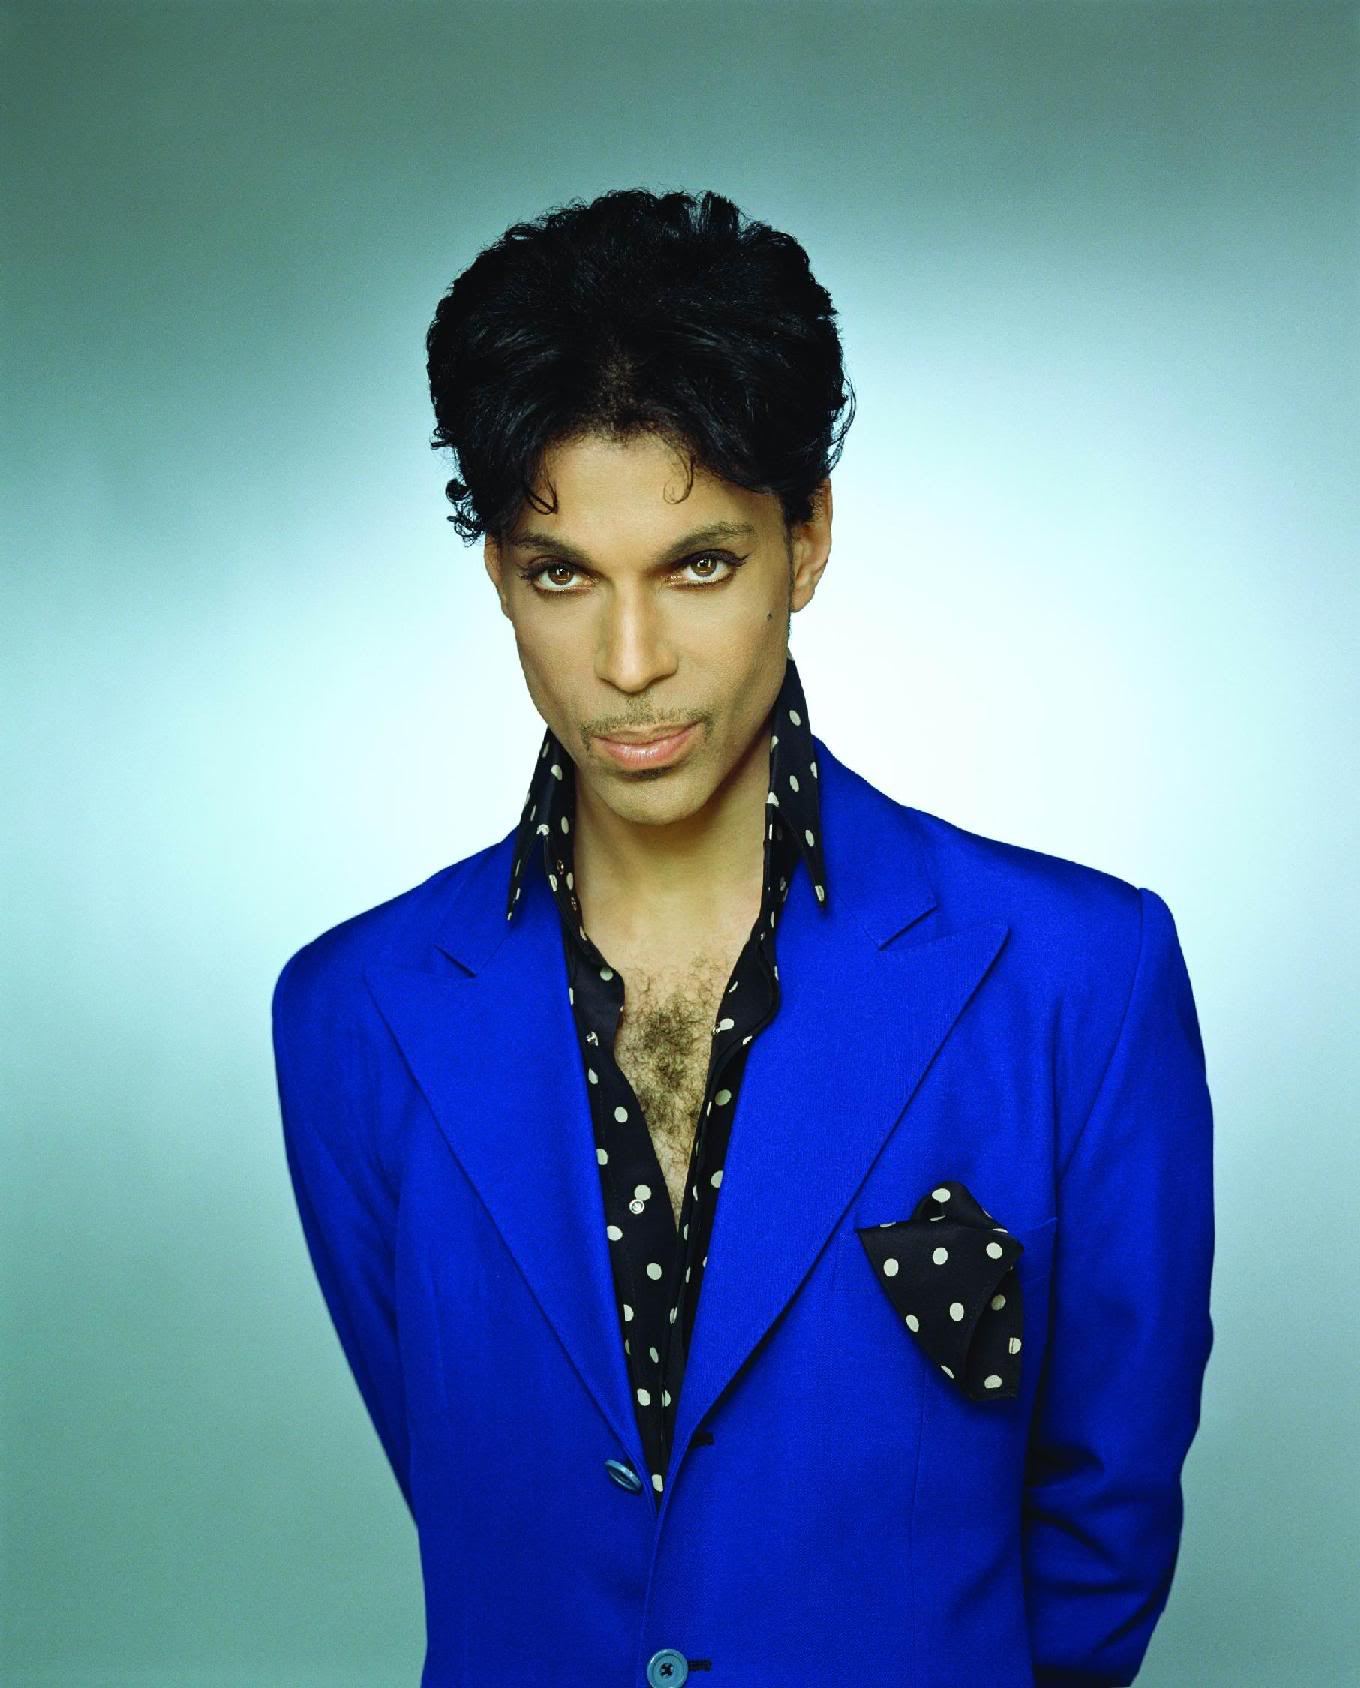 Legendary Musician Prince has Died at age 57 - BellaNaija